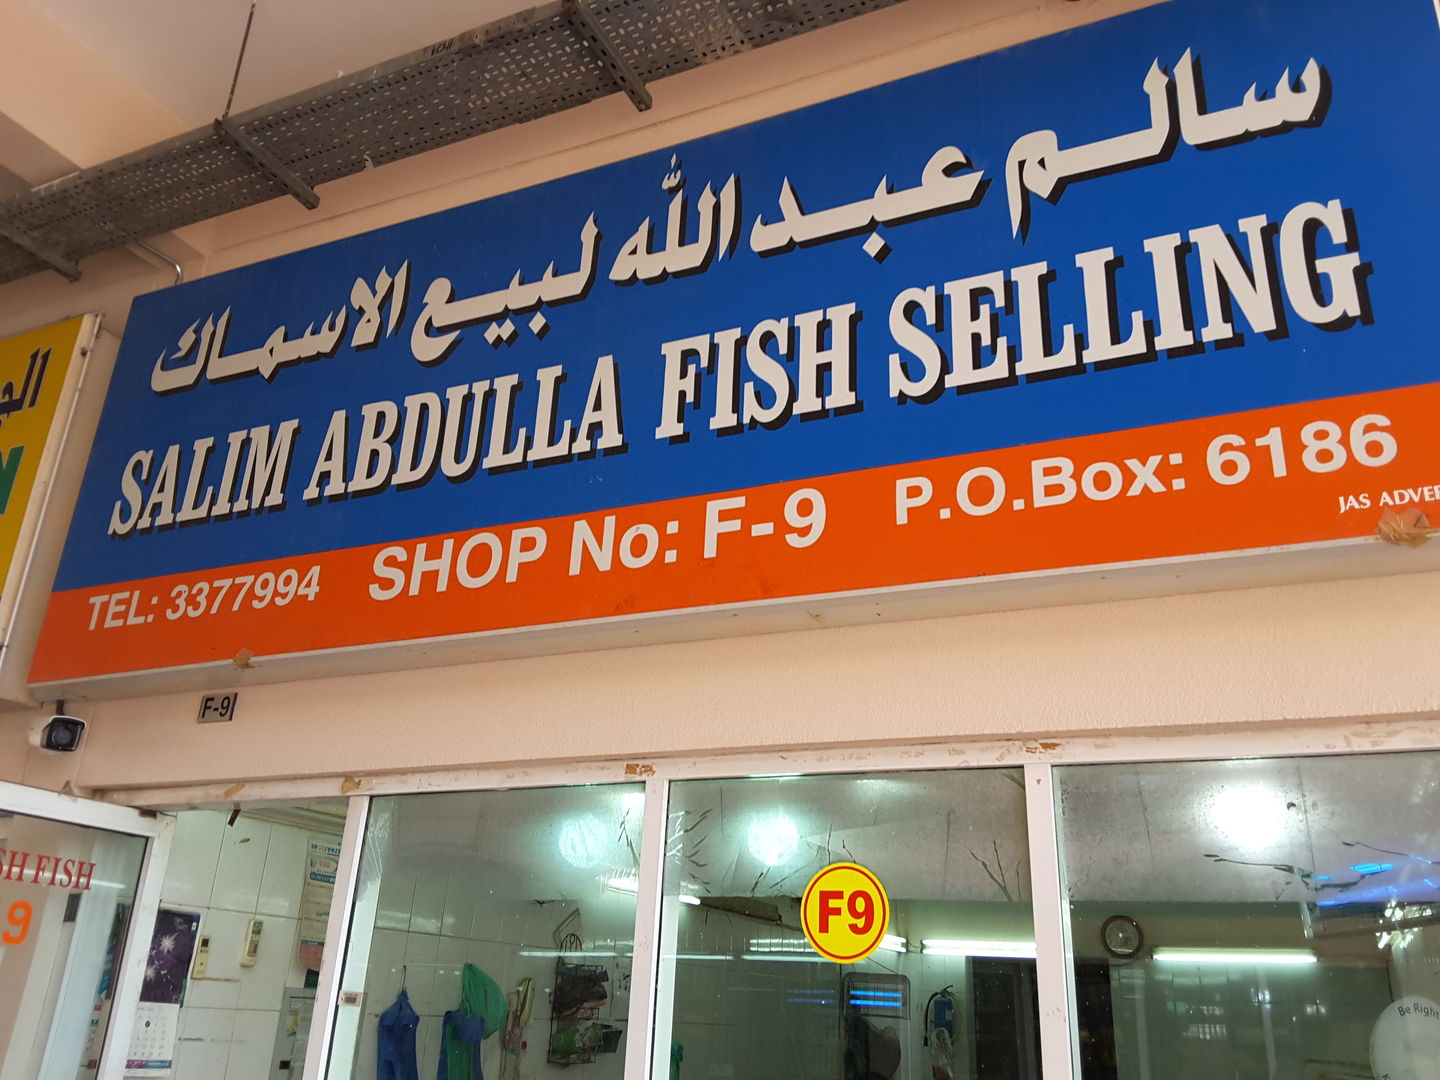 HiDubai-business-salim-abdulla-fish-selling-shopping-supermarkets-hypermarkets-grocery-stores-al-karama-dubai-2